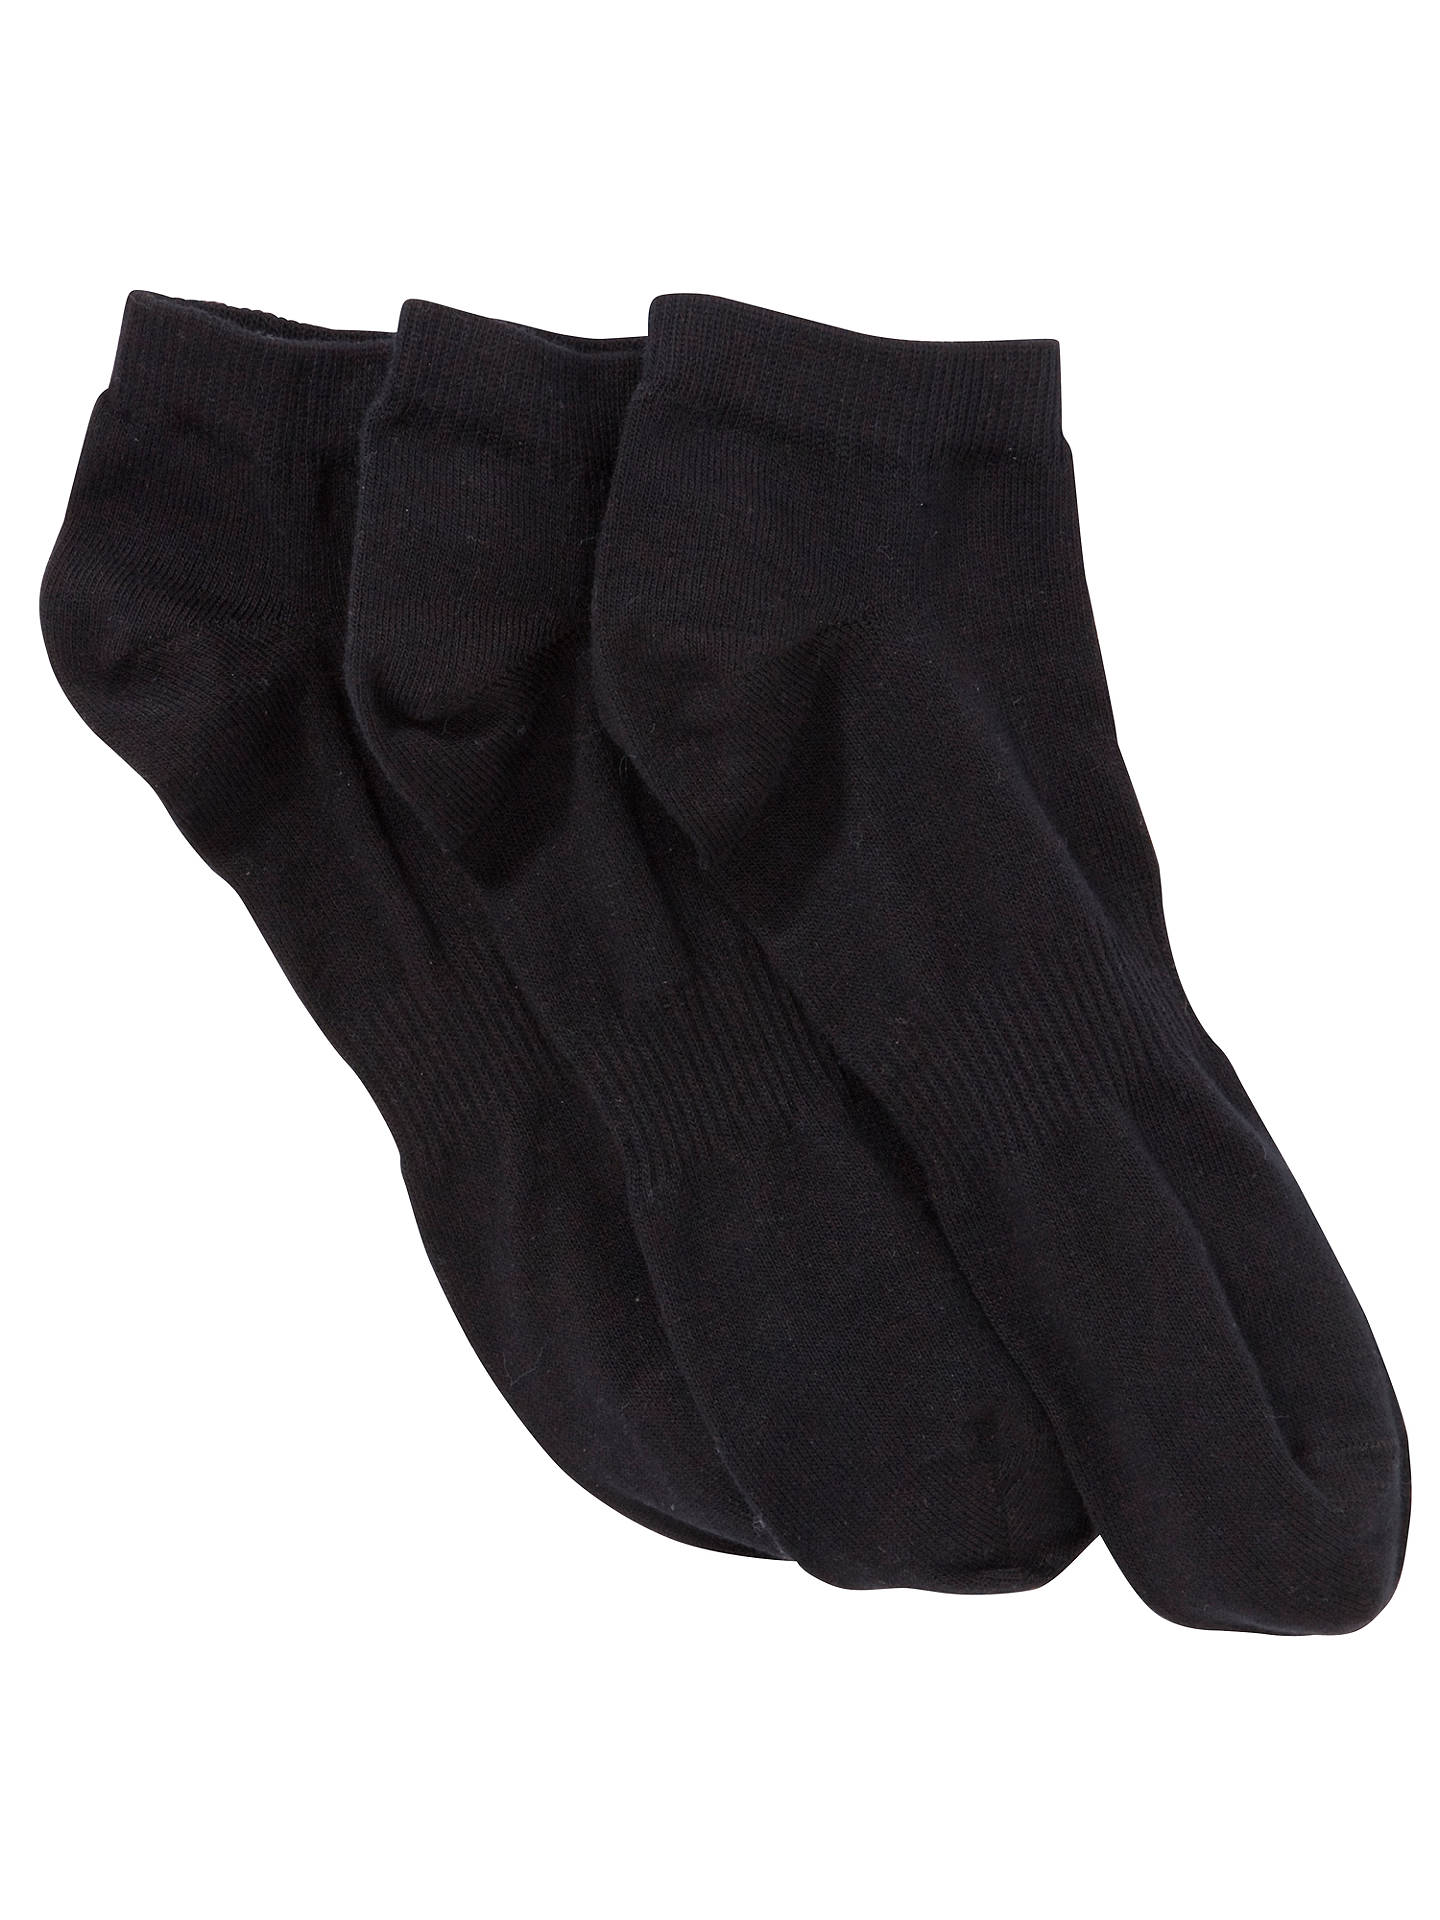 BuyJohn Lewis & Partners Cotton Trainer Socks, Pack of 3, Black, S Online at johnlewis.com